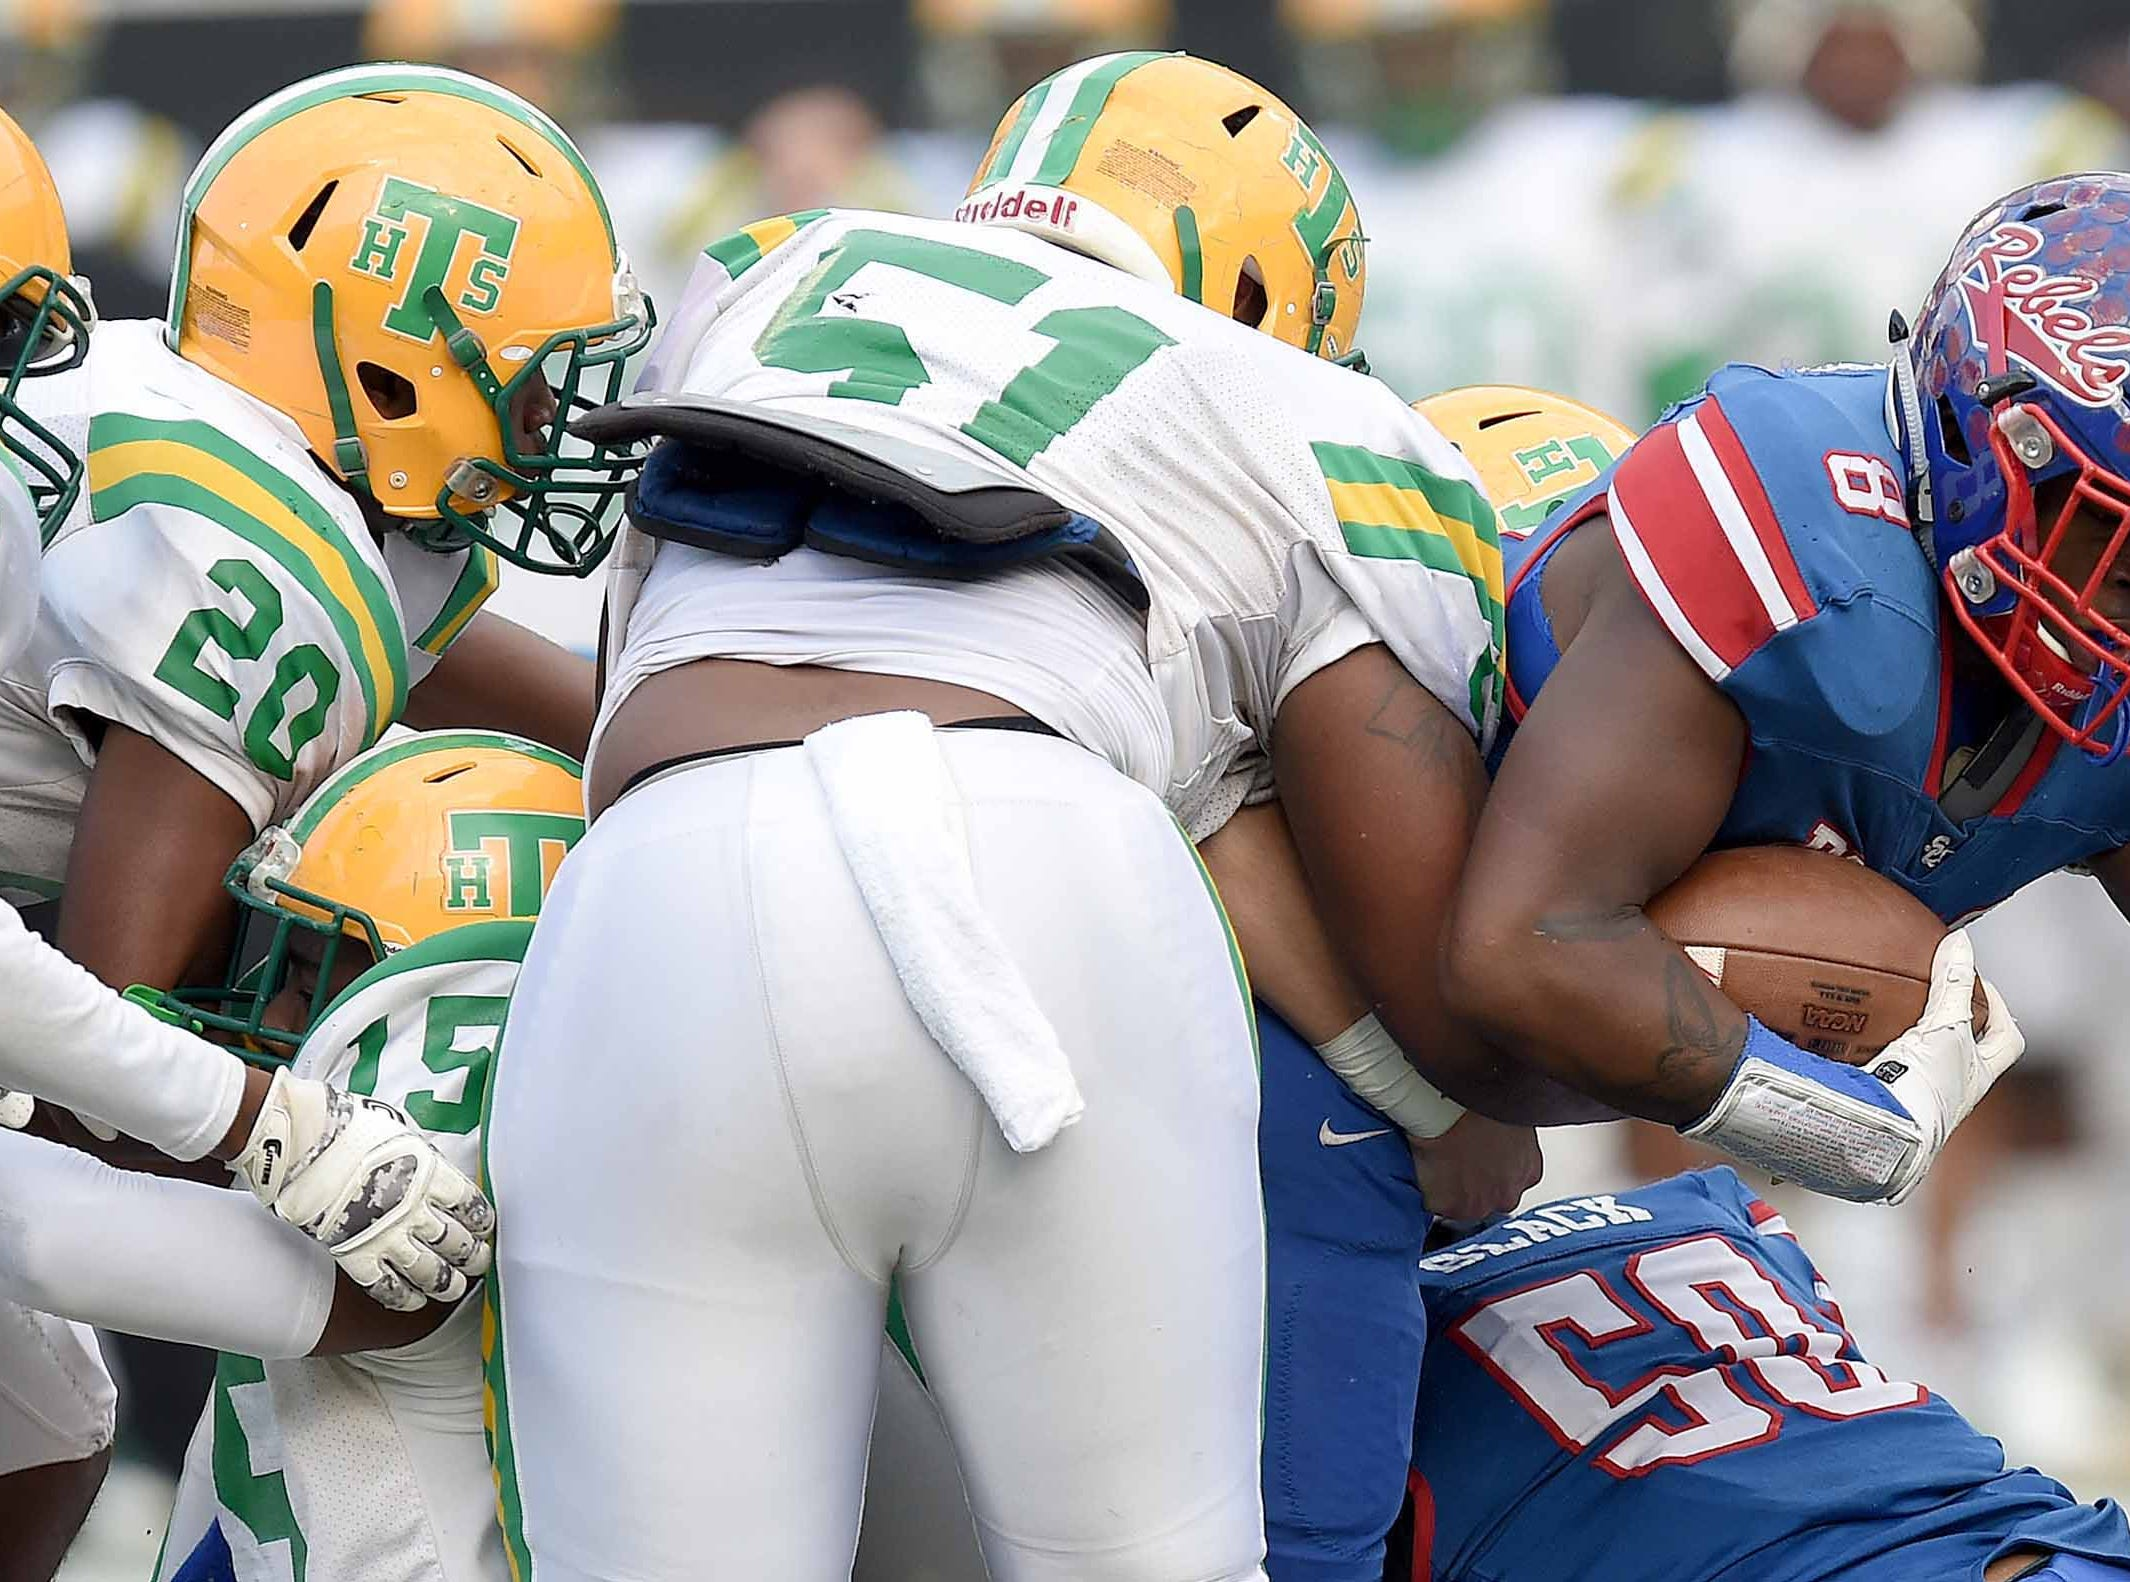 Scott Central's Nevonteque Strong (8) tries find a way through a wall of Taylorsville defenders on Saturday, December 1, 2018, in the MHSAA BlueCross BlueShield Gridiron Classic High School Football Championships in M.M. Roberts Stadium on the University of Southern Mississippi campus in Hattiesburg, Miss.